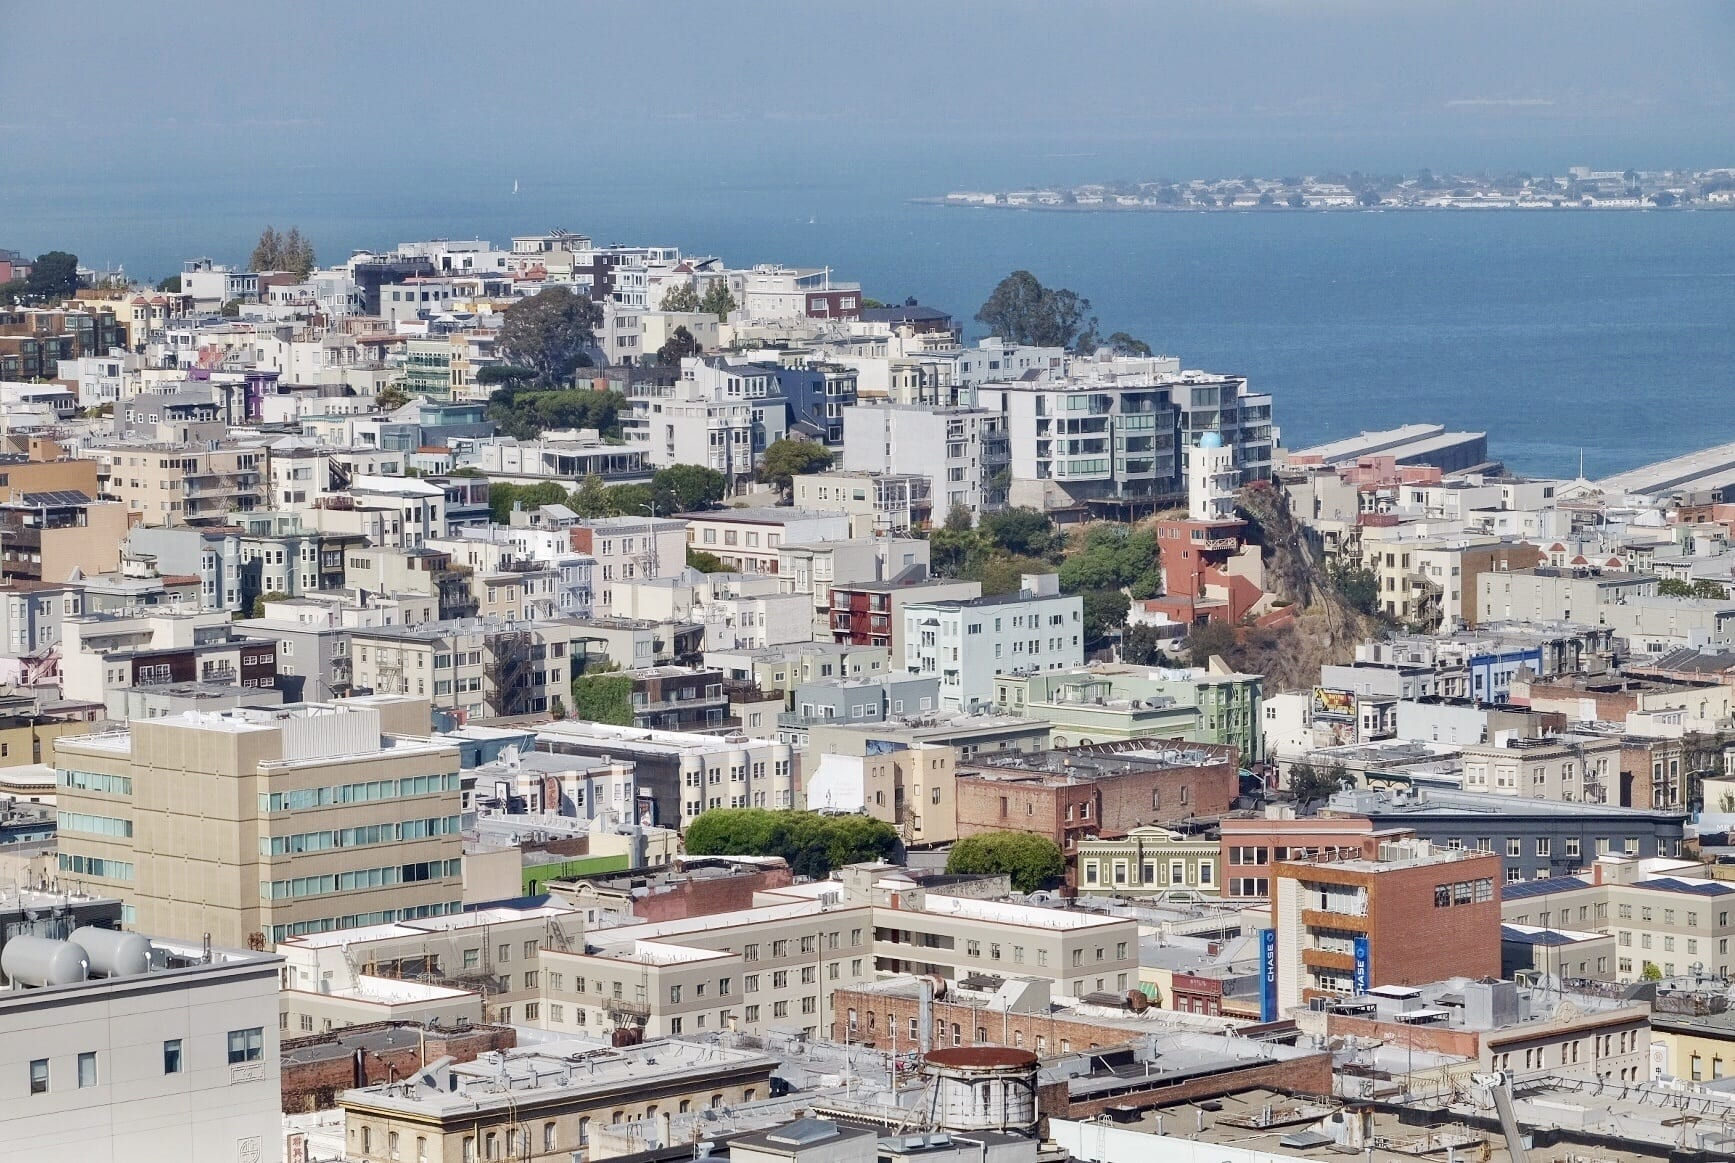 The San Francisco neighborhoods of Russian Hill and North Beach have square-shaped buildings stacked on top of each other, ascending and descending down the hills with occasional trees. In the background is San Francisco Bay and you can see Oakland through the haze in the distance.